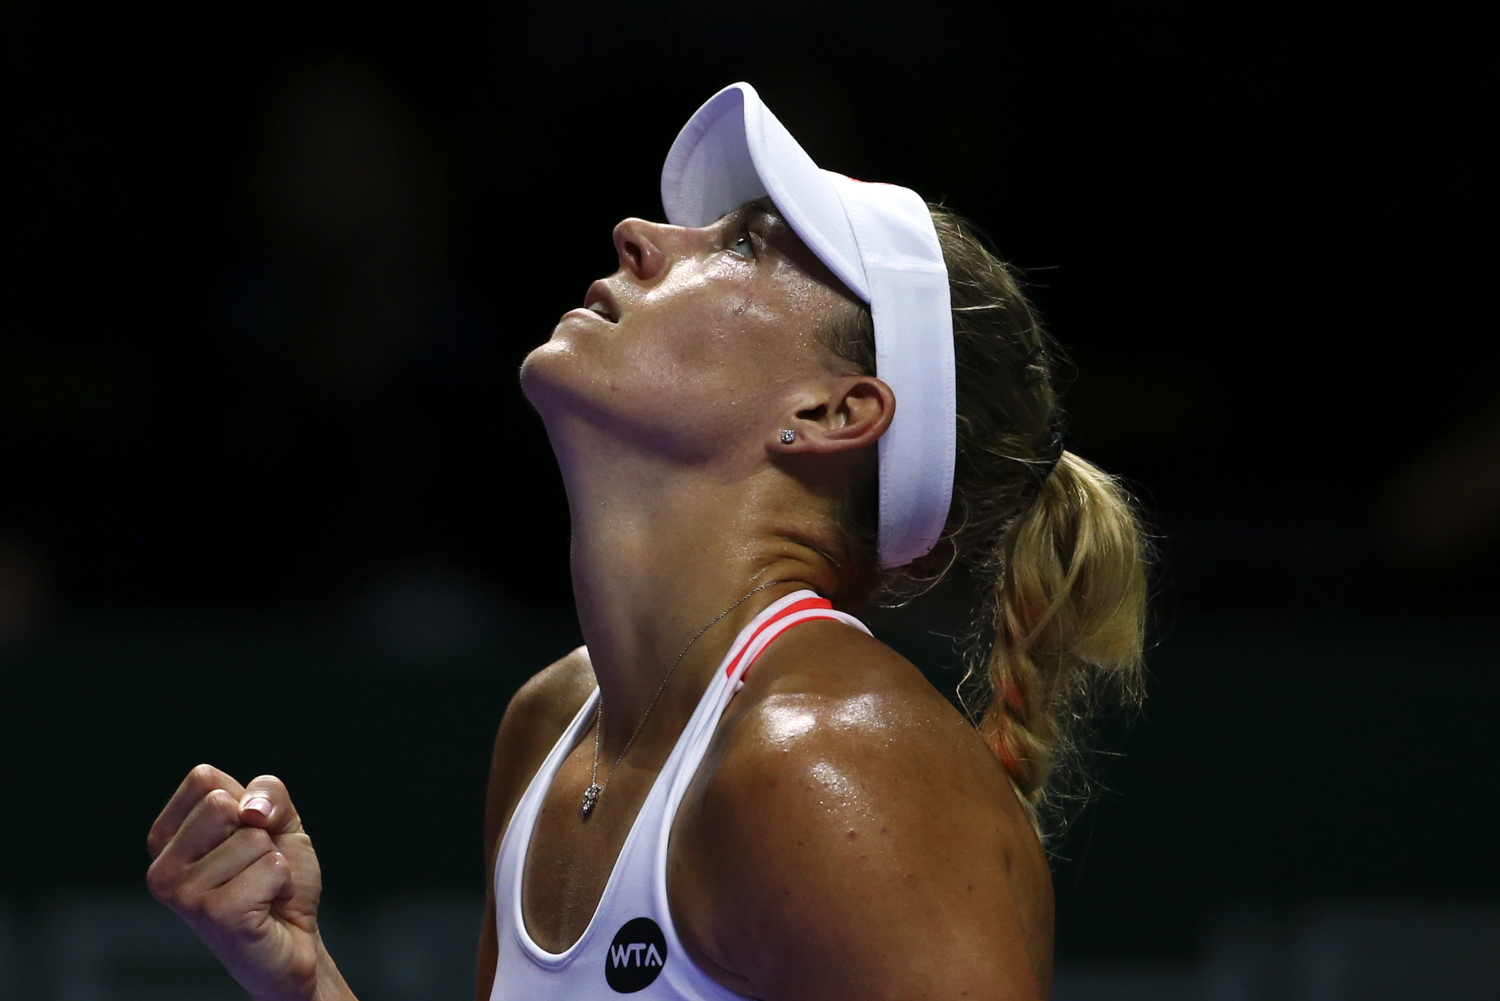 Tennis - BNP Paribas WTA Finals - Singapore Indoor Stadium - 25/10/16 Germany's Angelique Kerber celebrates during her round robin match Mandatory Credit: Action Images / Yong Teck Lim Livepic EDITORIAL USE ONLY.